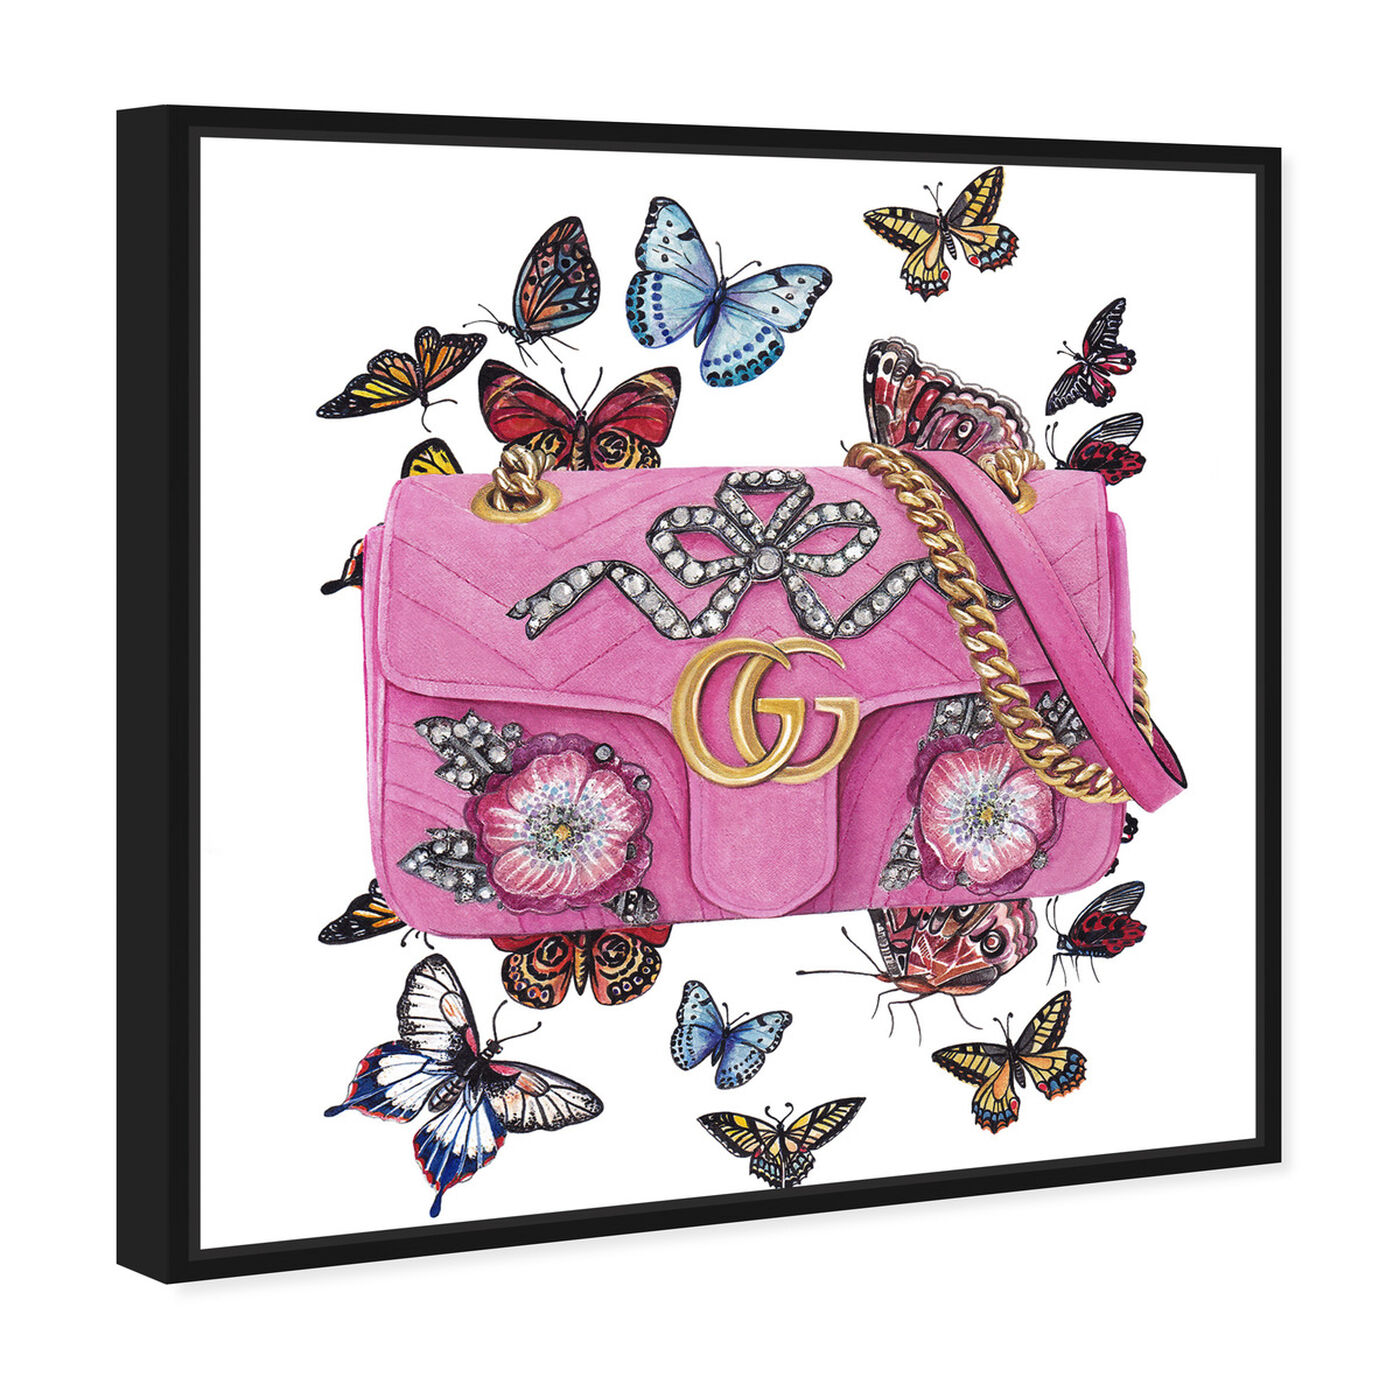 Angled view of Doll Memories - Butterfly Bag featuring fashion and glam and handbags art.